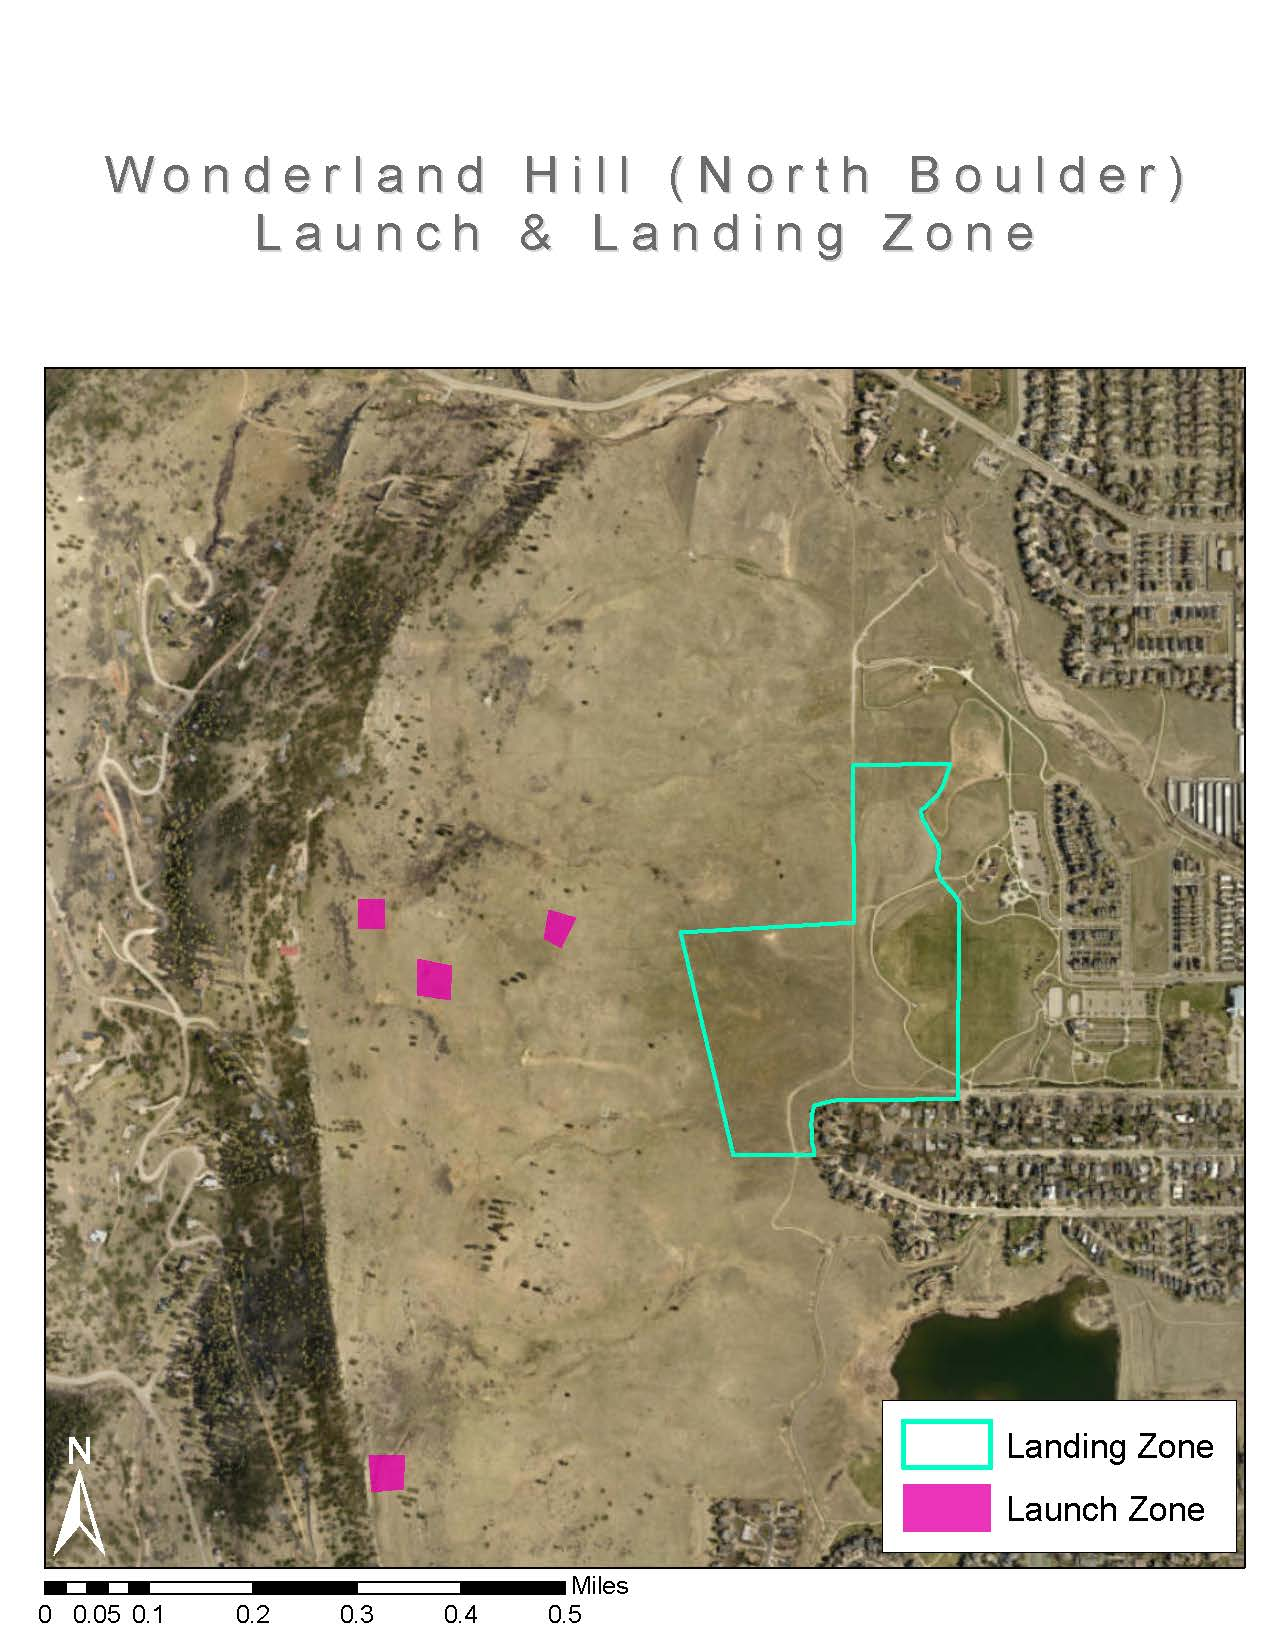 North Boulder Landing Zones